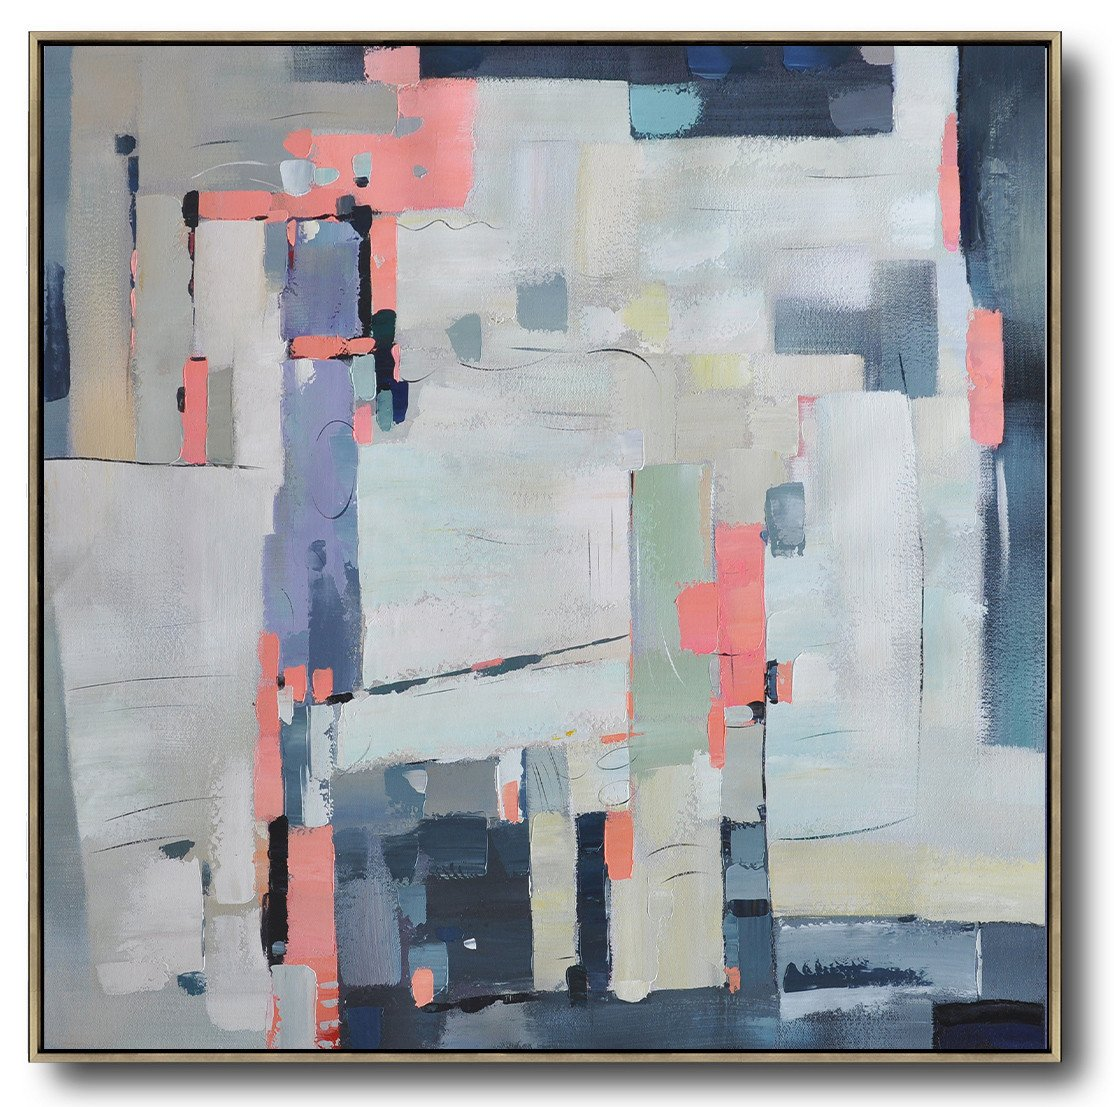 Huge Abstract Painting On Canvas,Oversized Contemporary Art,Modern Art,Pink,Grey,Purple,Dark Blue.etc